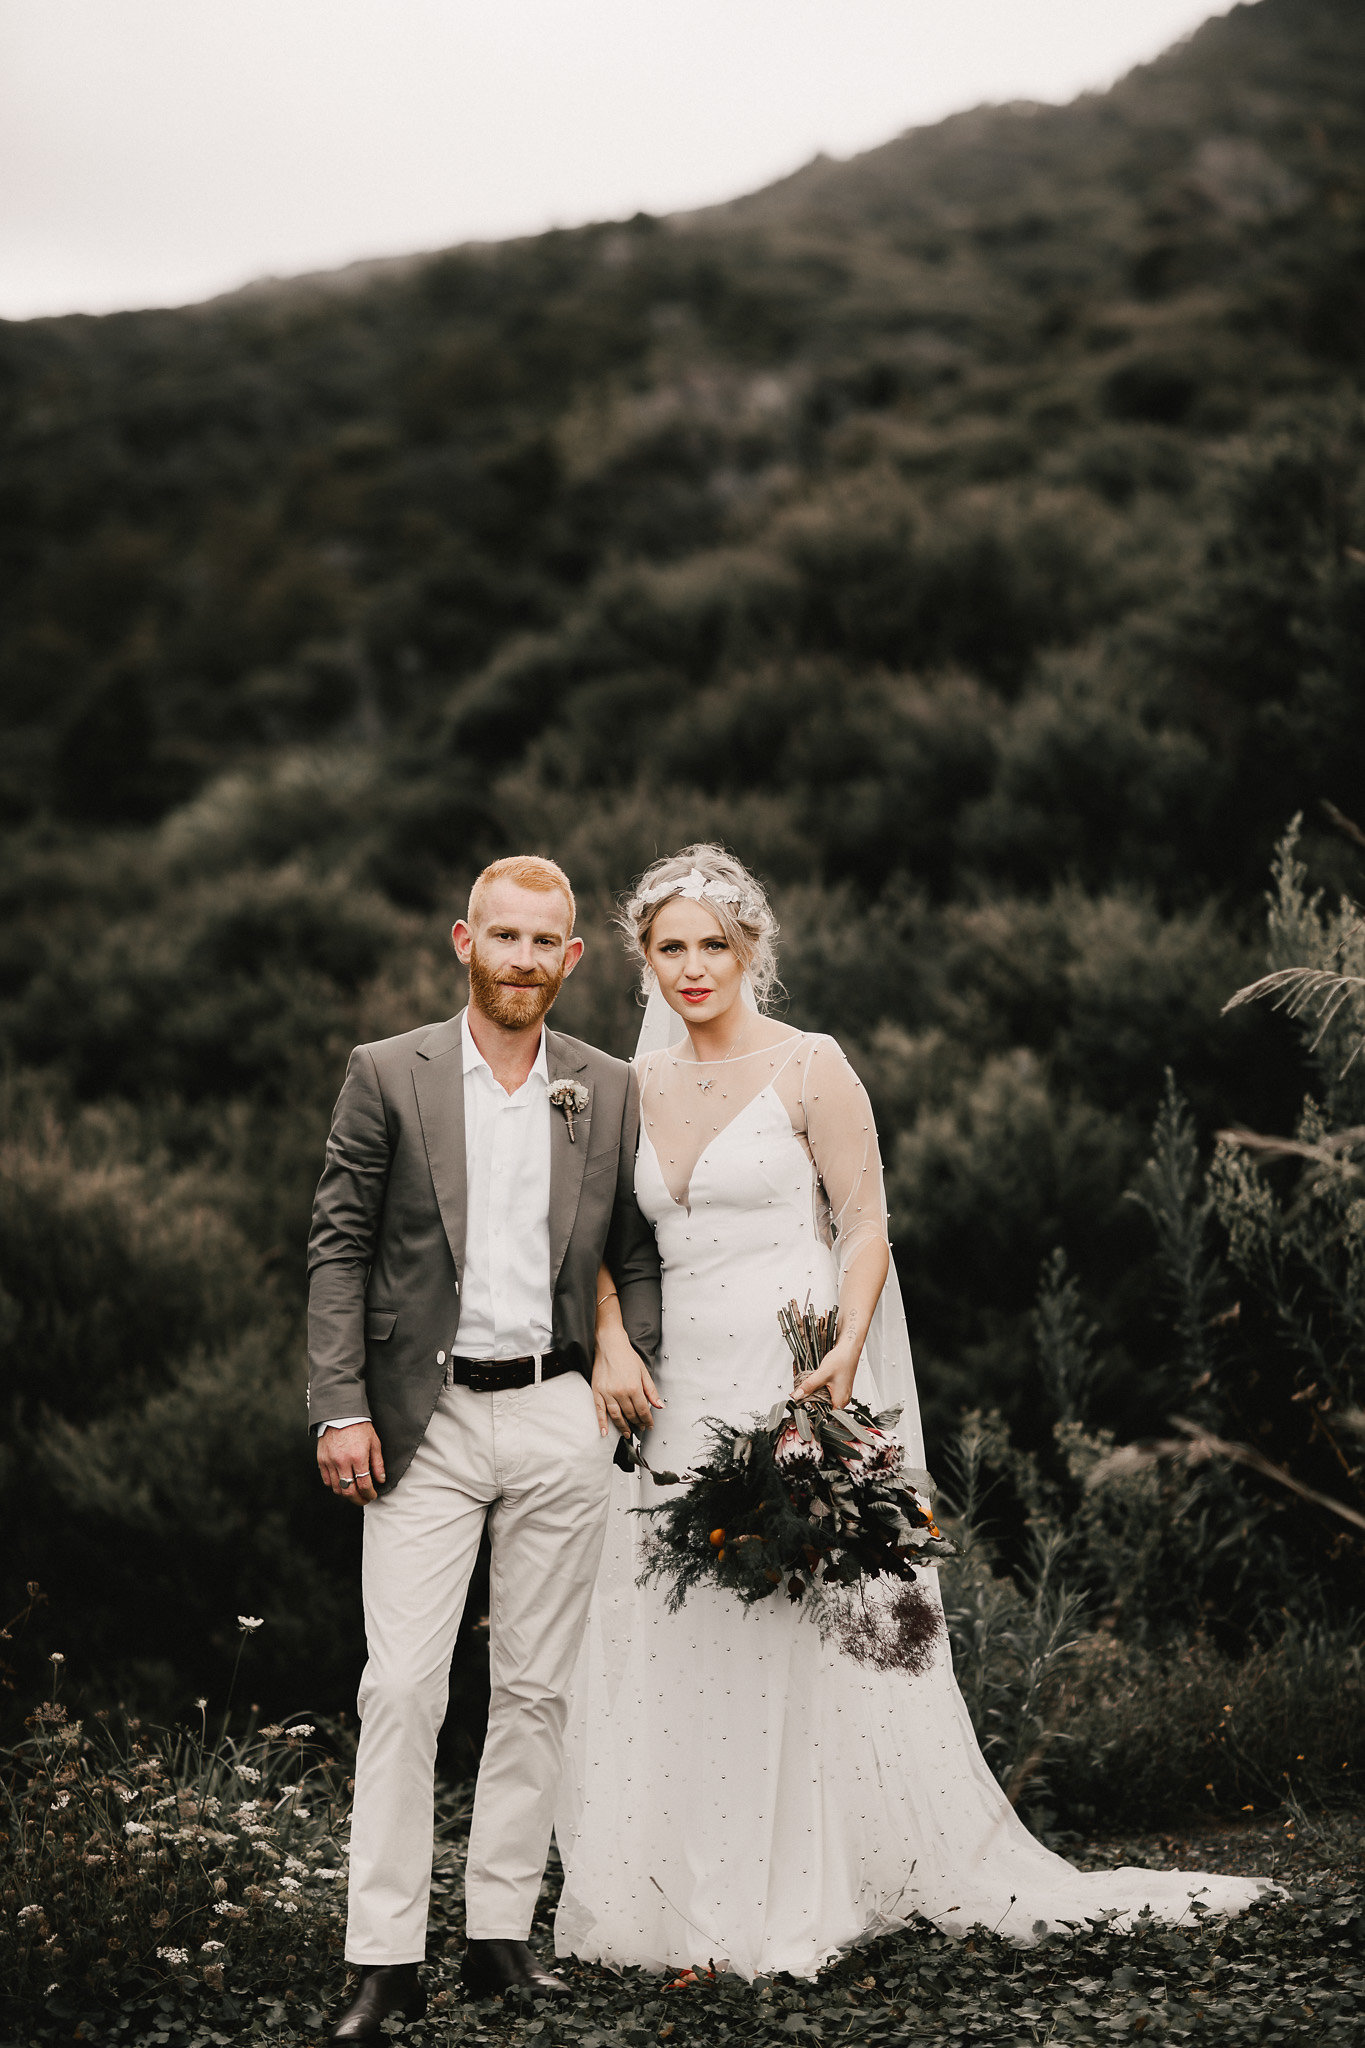 Categories: Weddings-Real Wedding: Ben and Belle- Photography by Jessica Sim